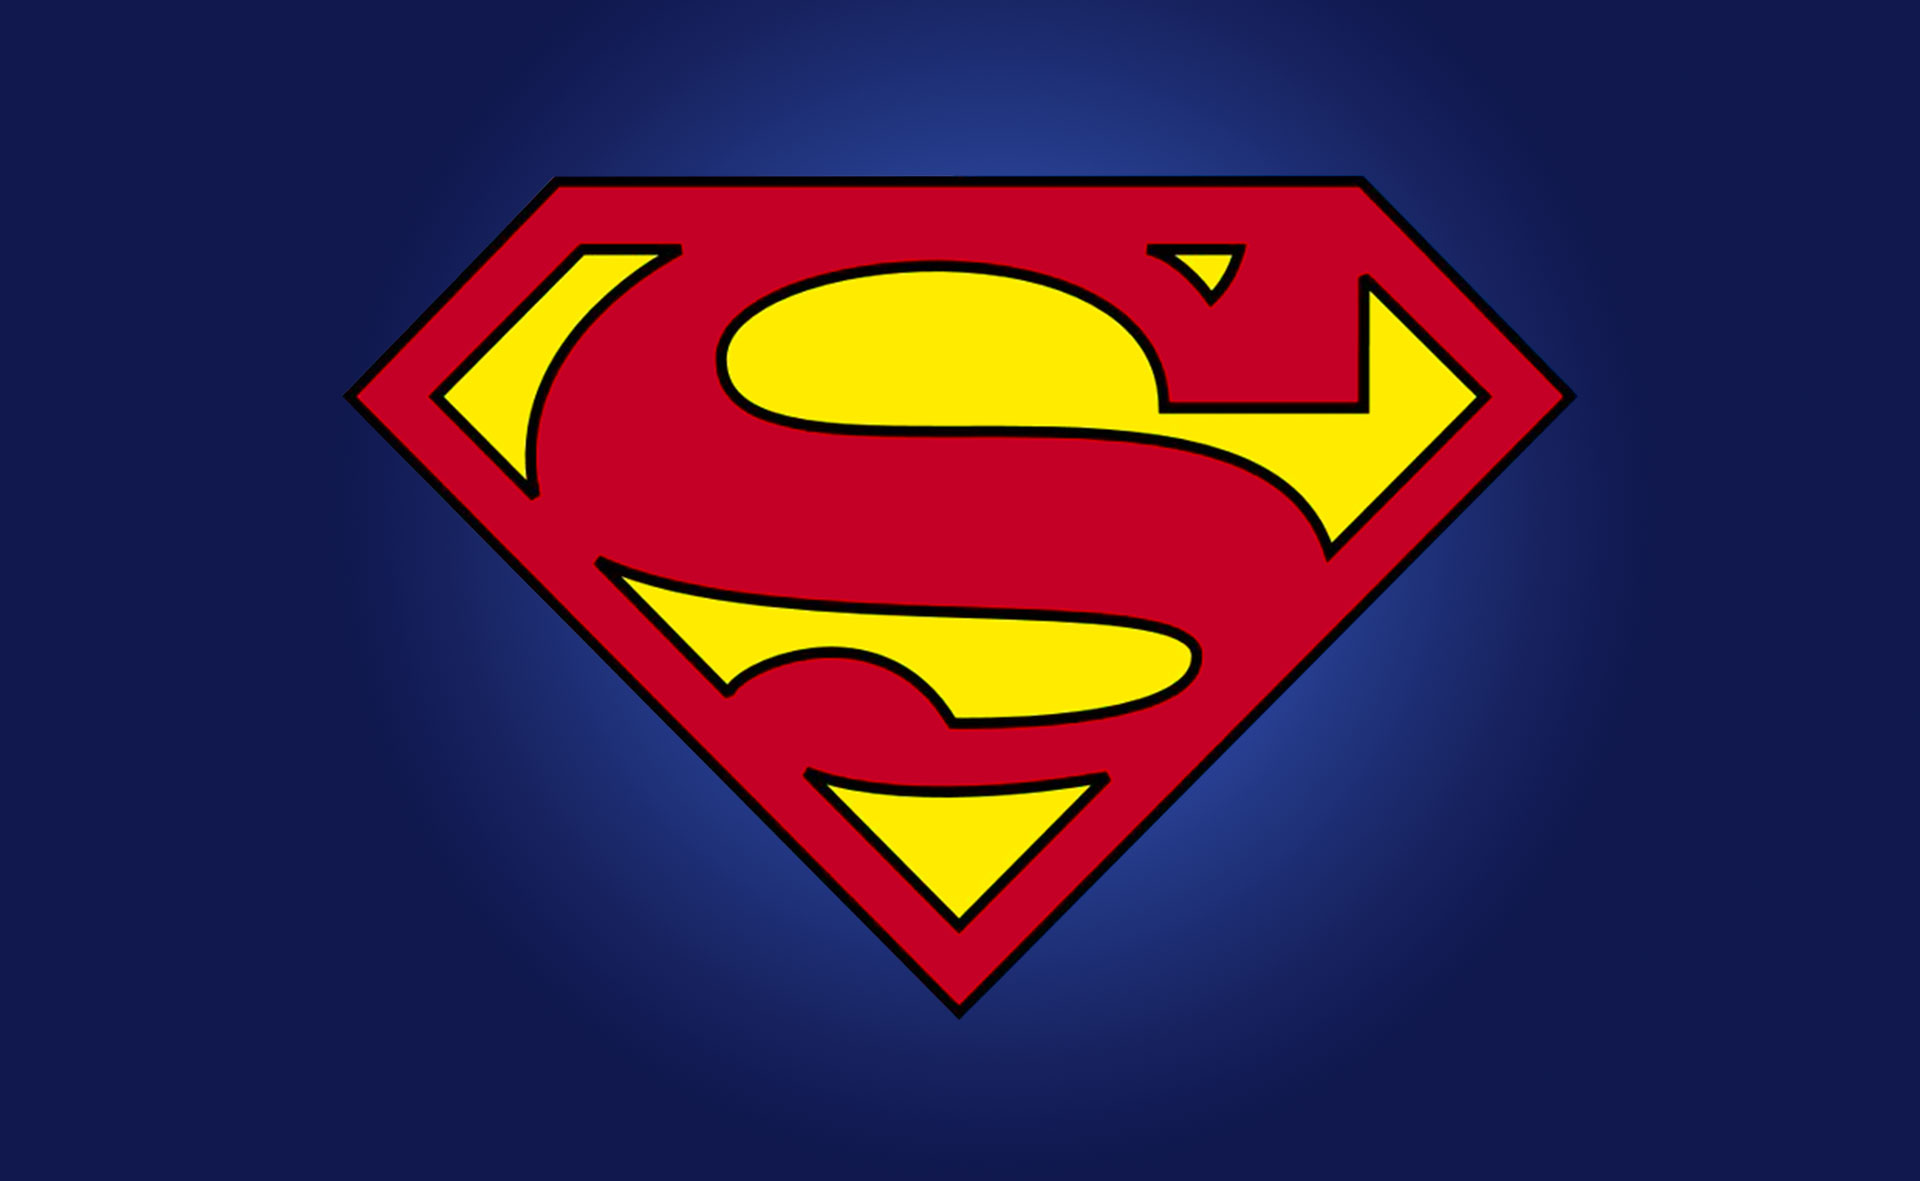 Superman S Logo, Christopher Reeve Movie Era, 1970s and 80s